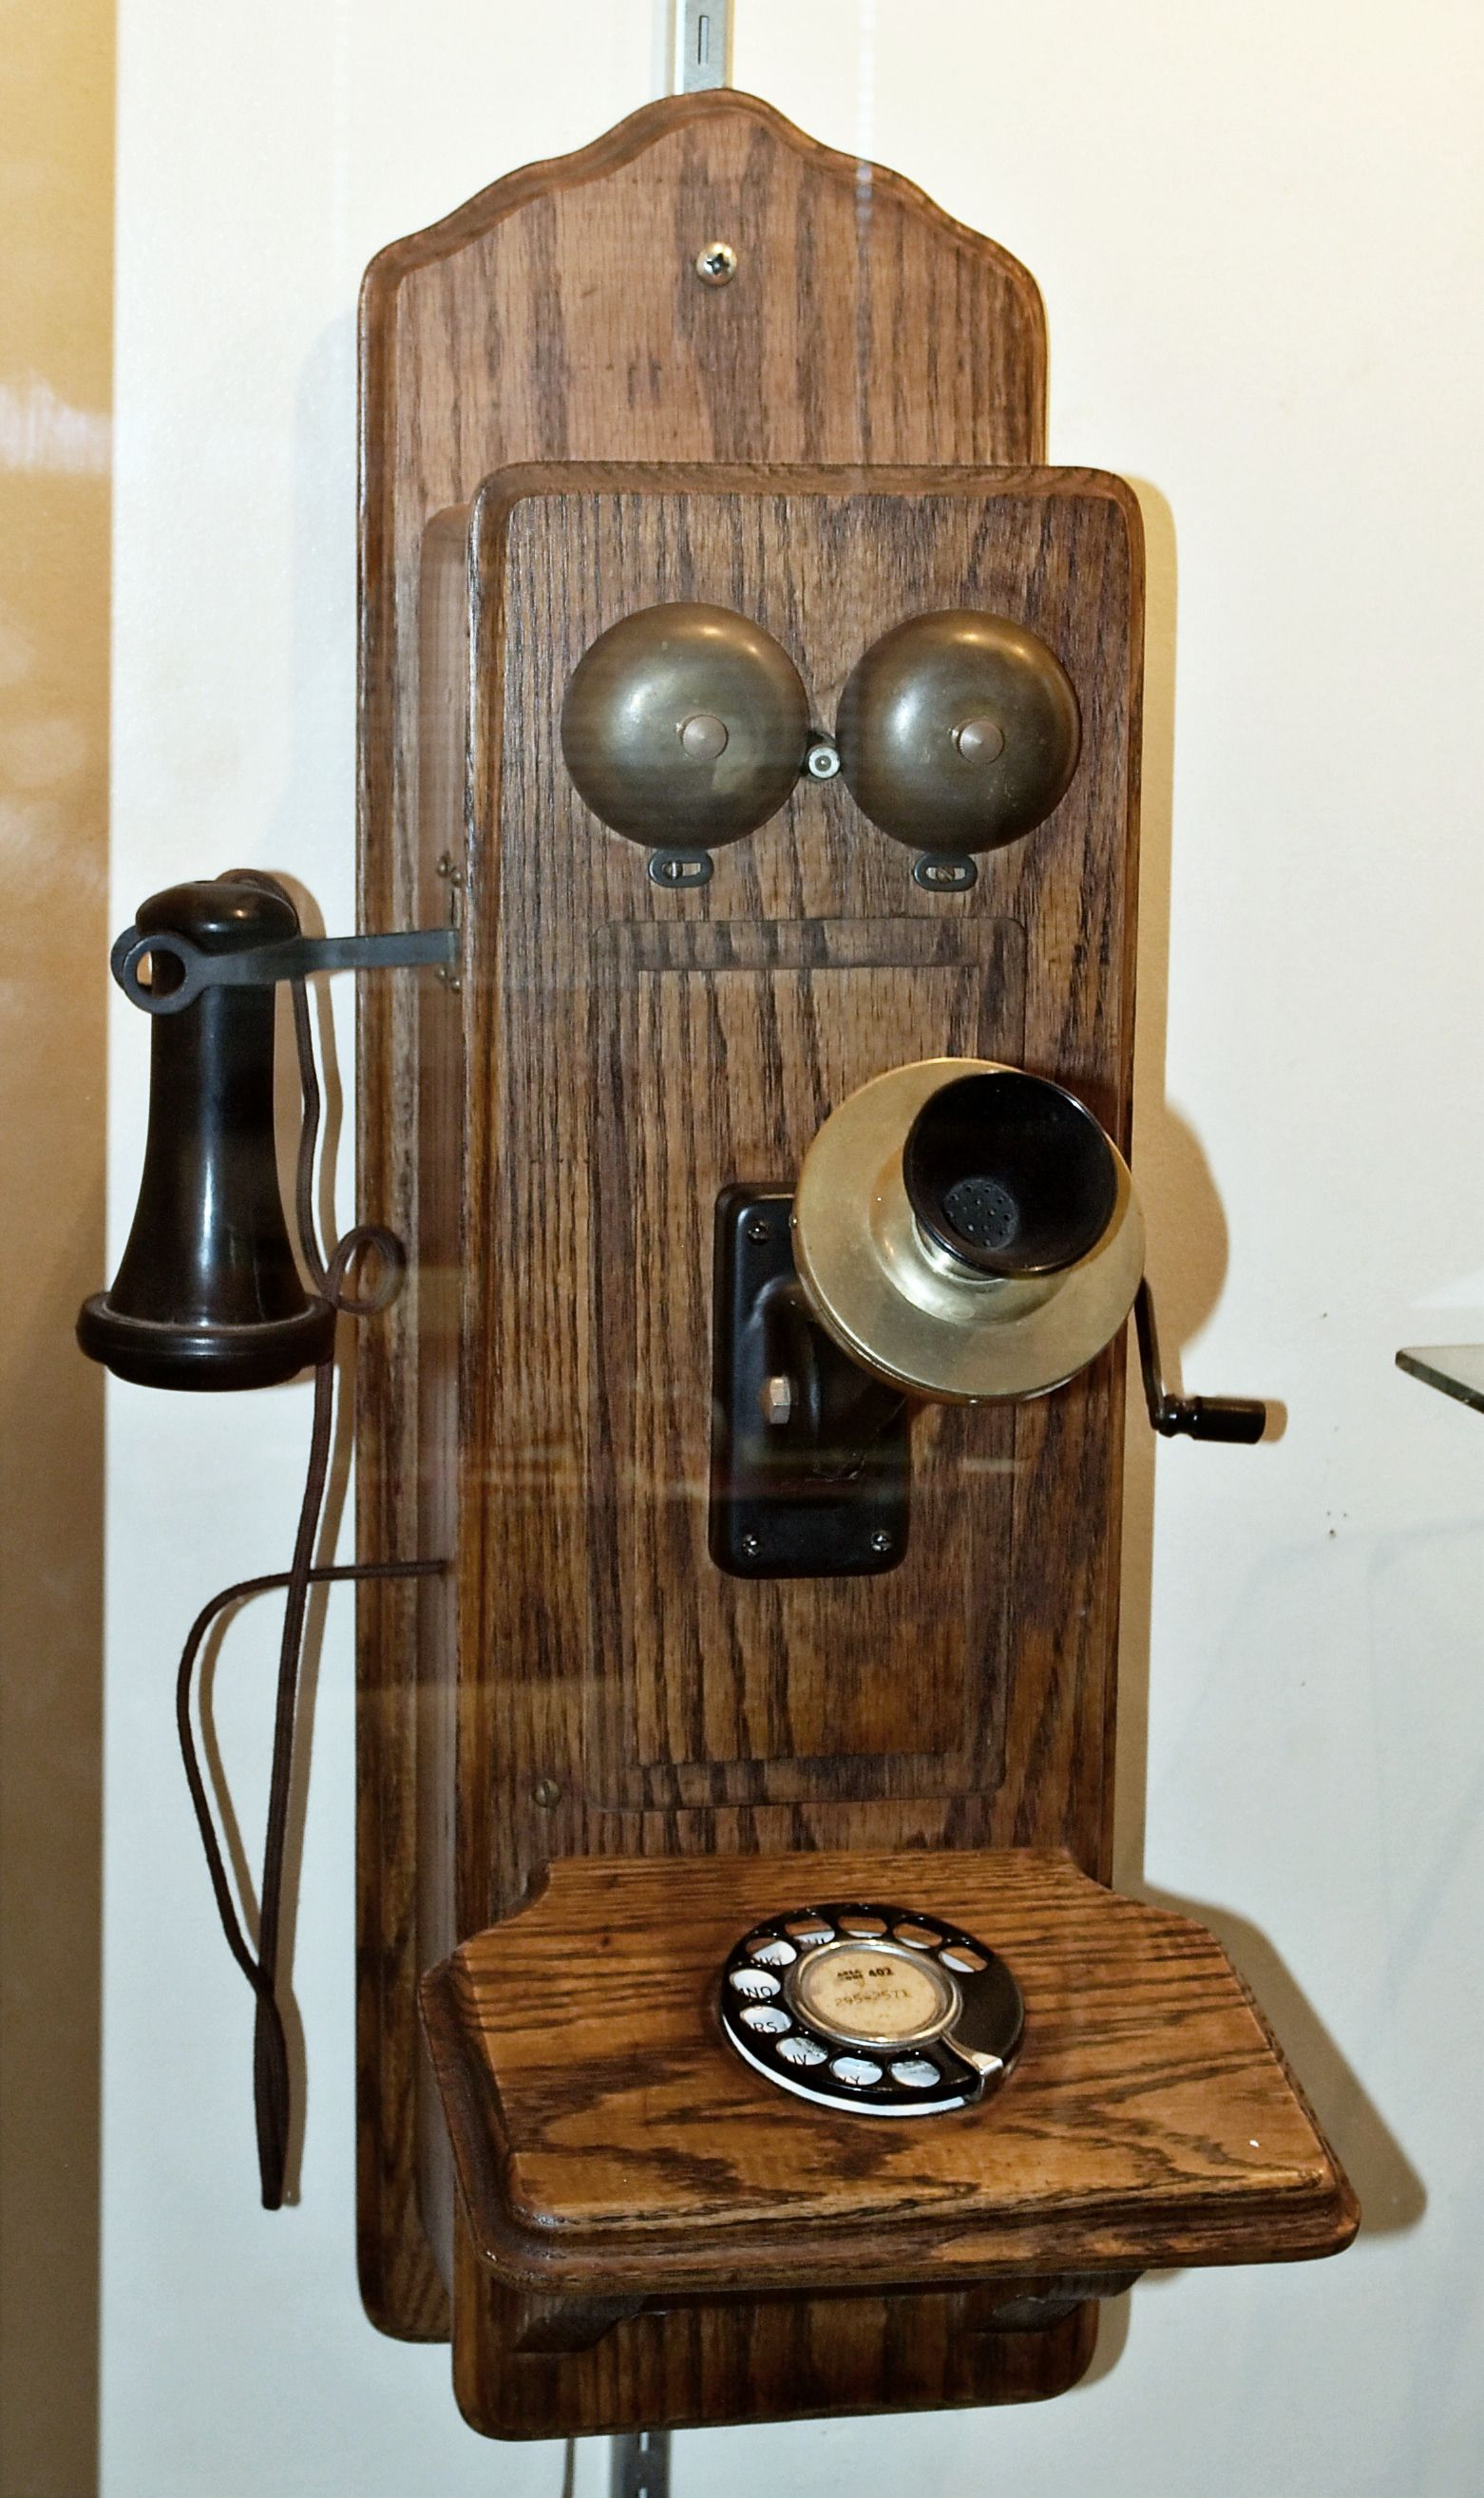 The telephone was a late 19th century invention that ...